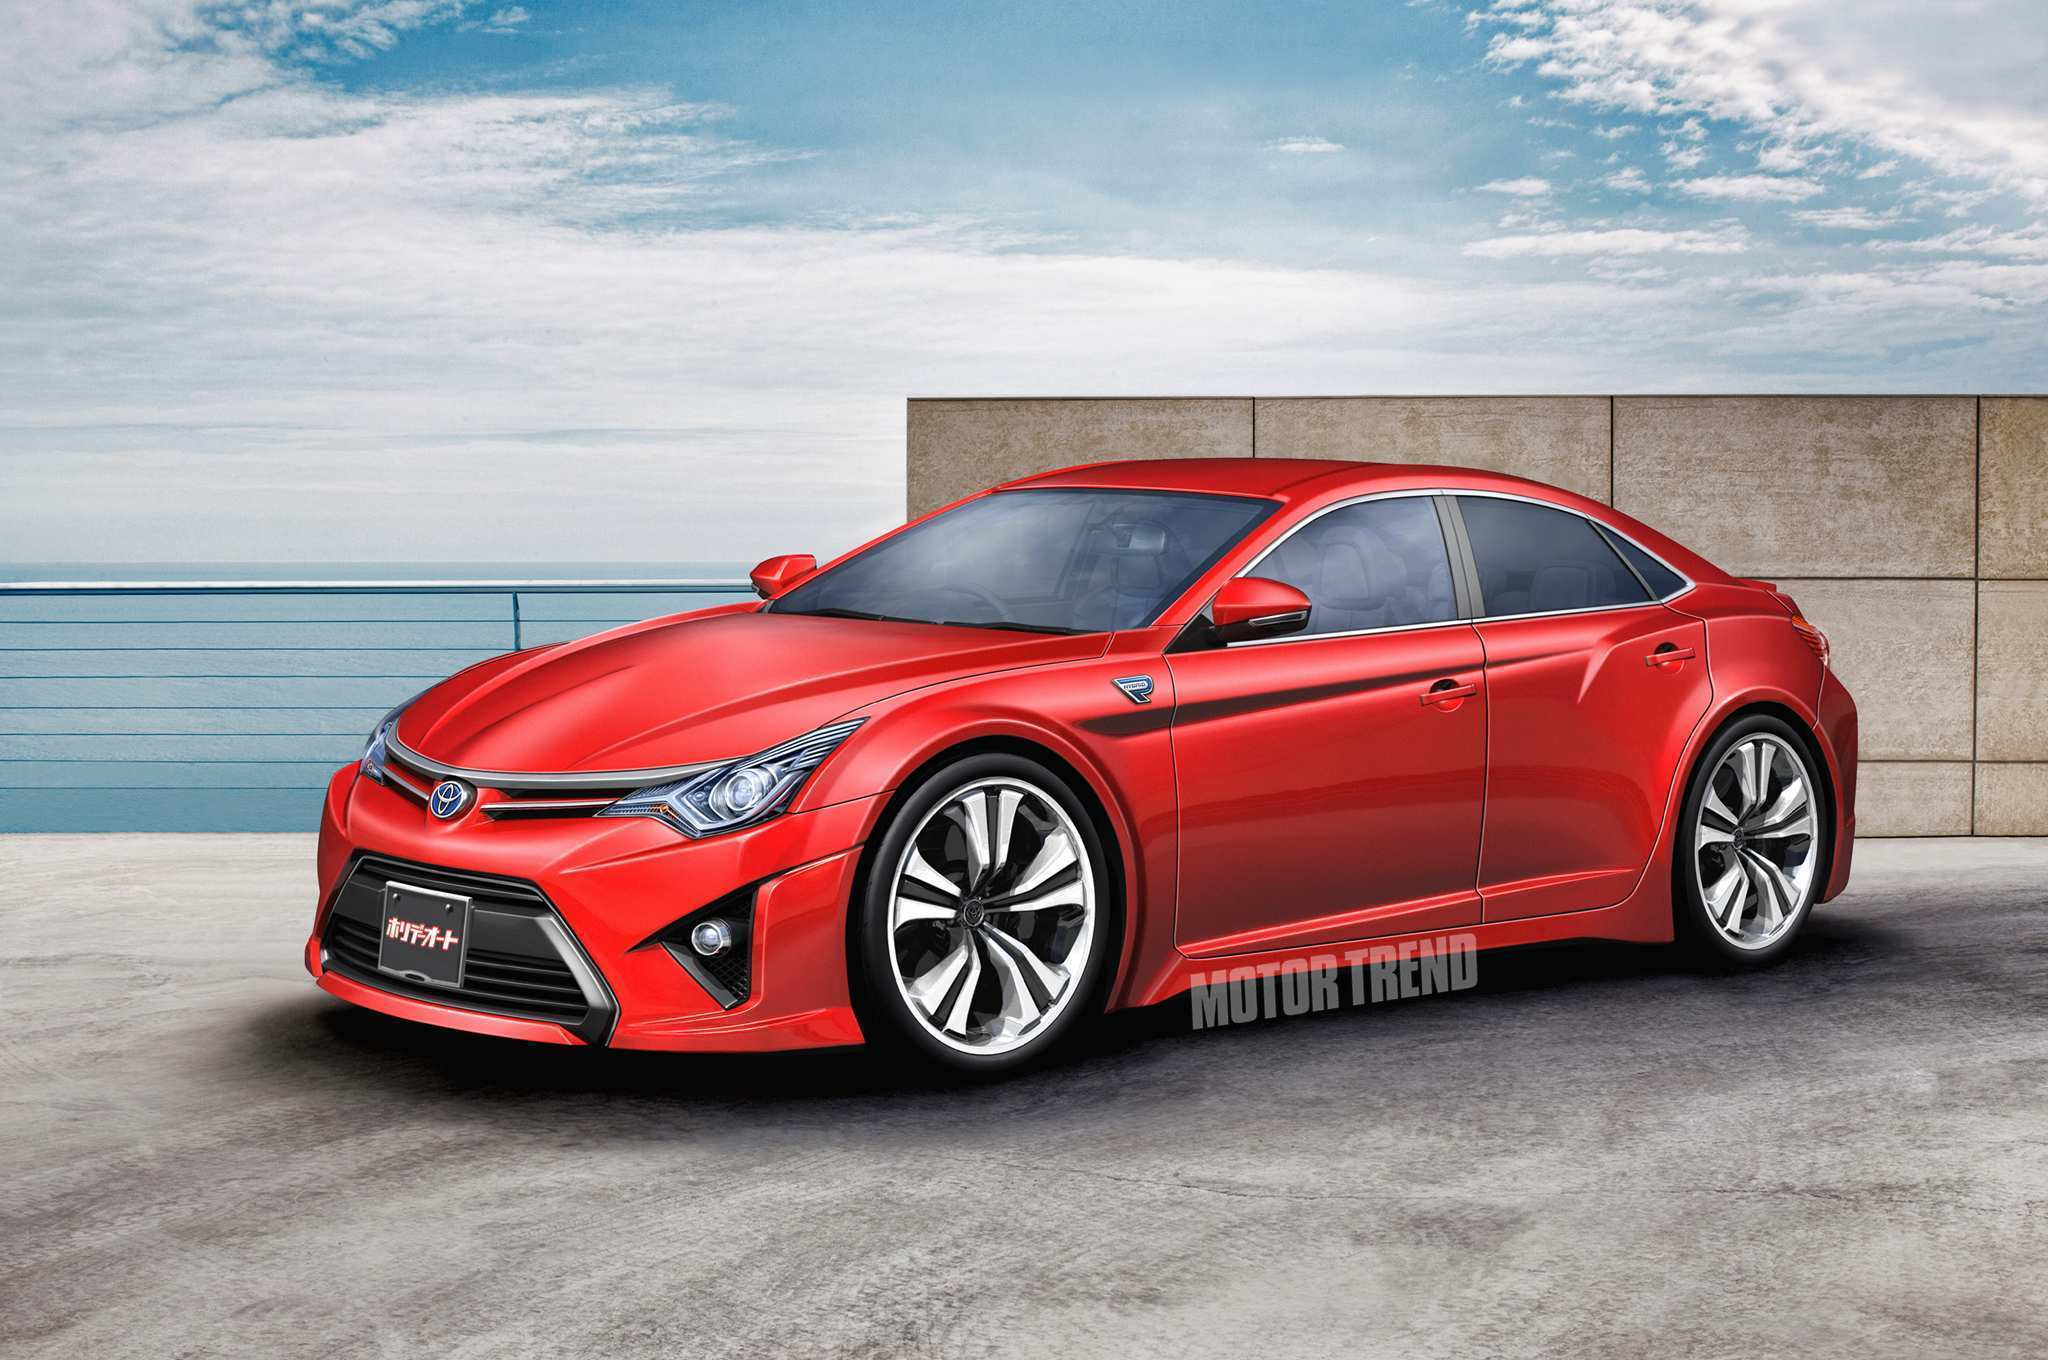 68 All New 2020 Scion FR S Sedan Model